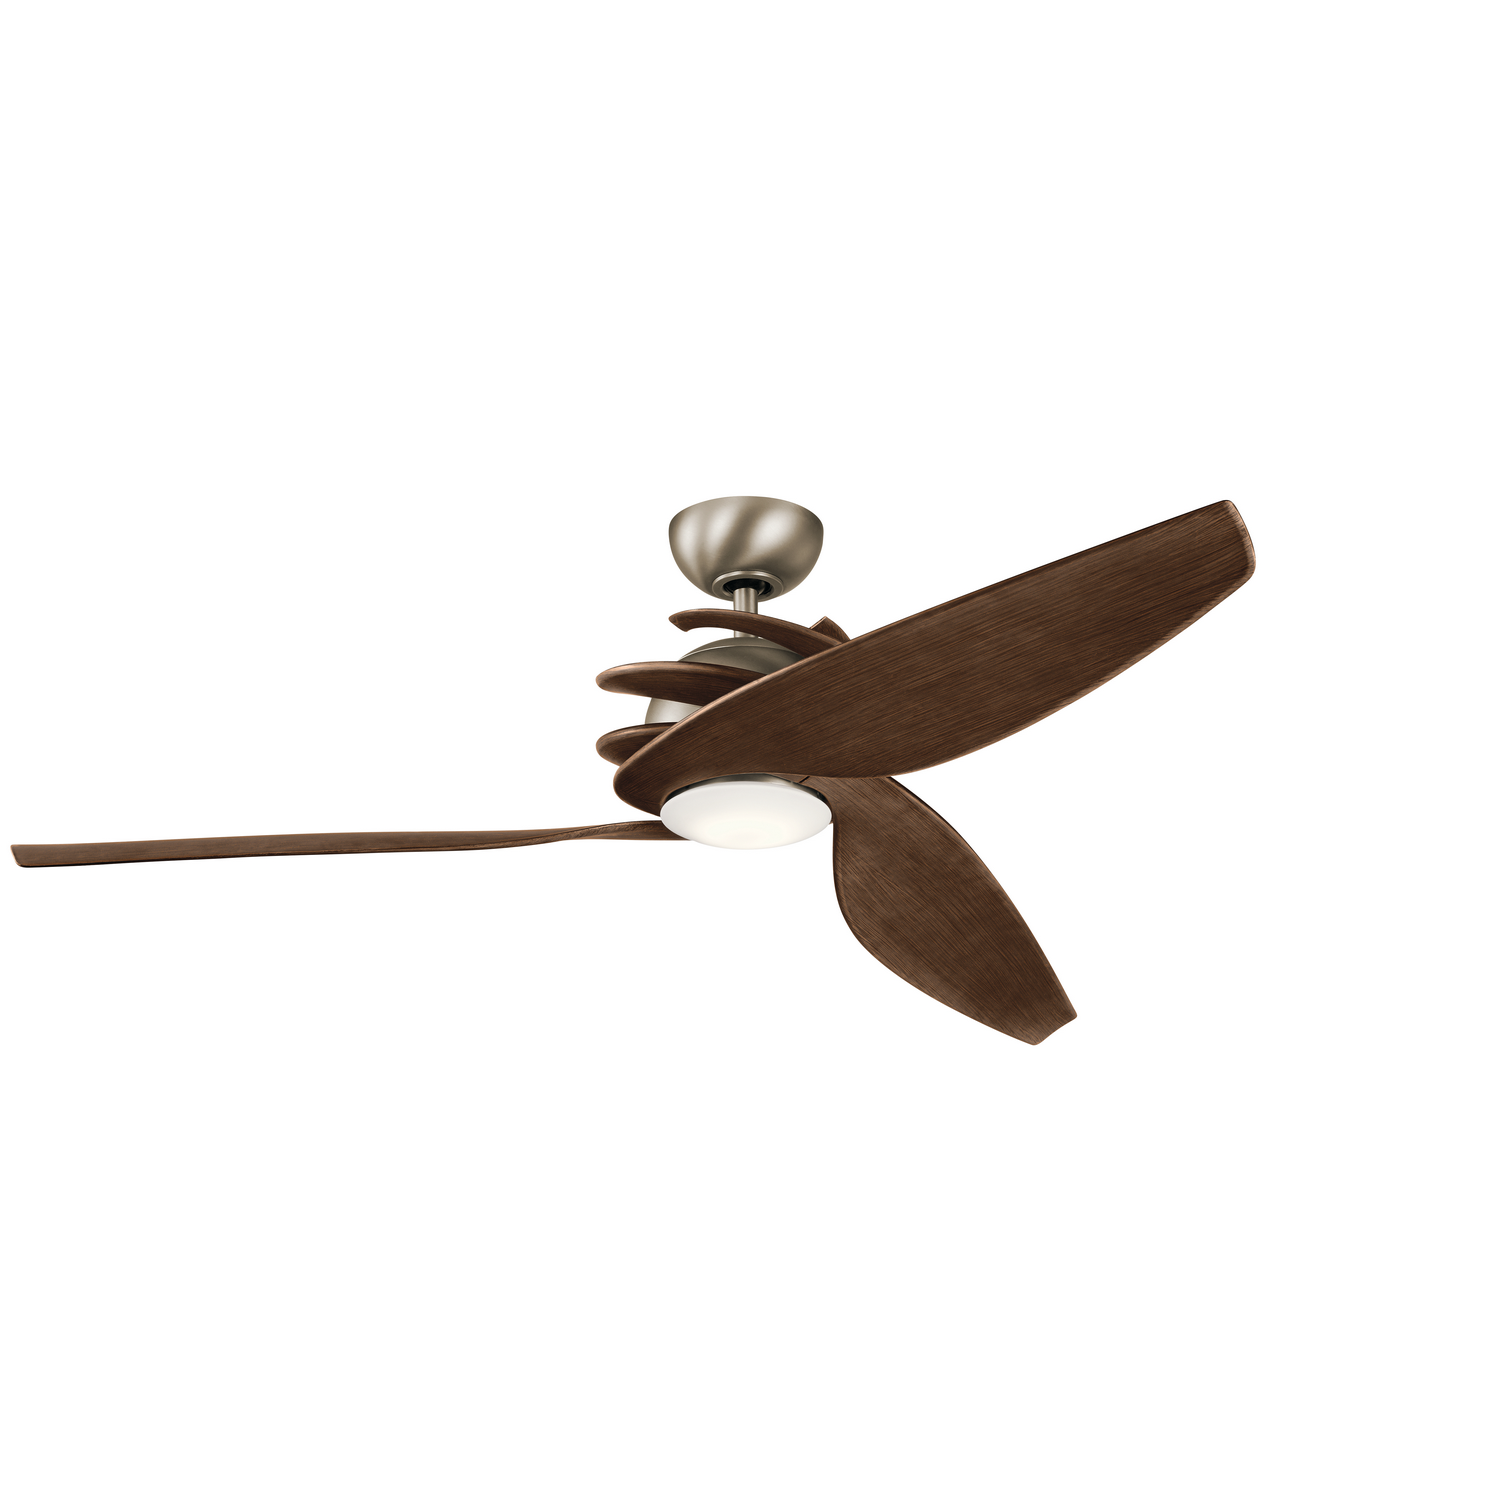 62 inchCeiling Fan from the Spyra collection by Kichler 300700AP